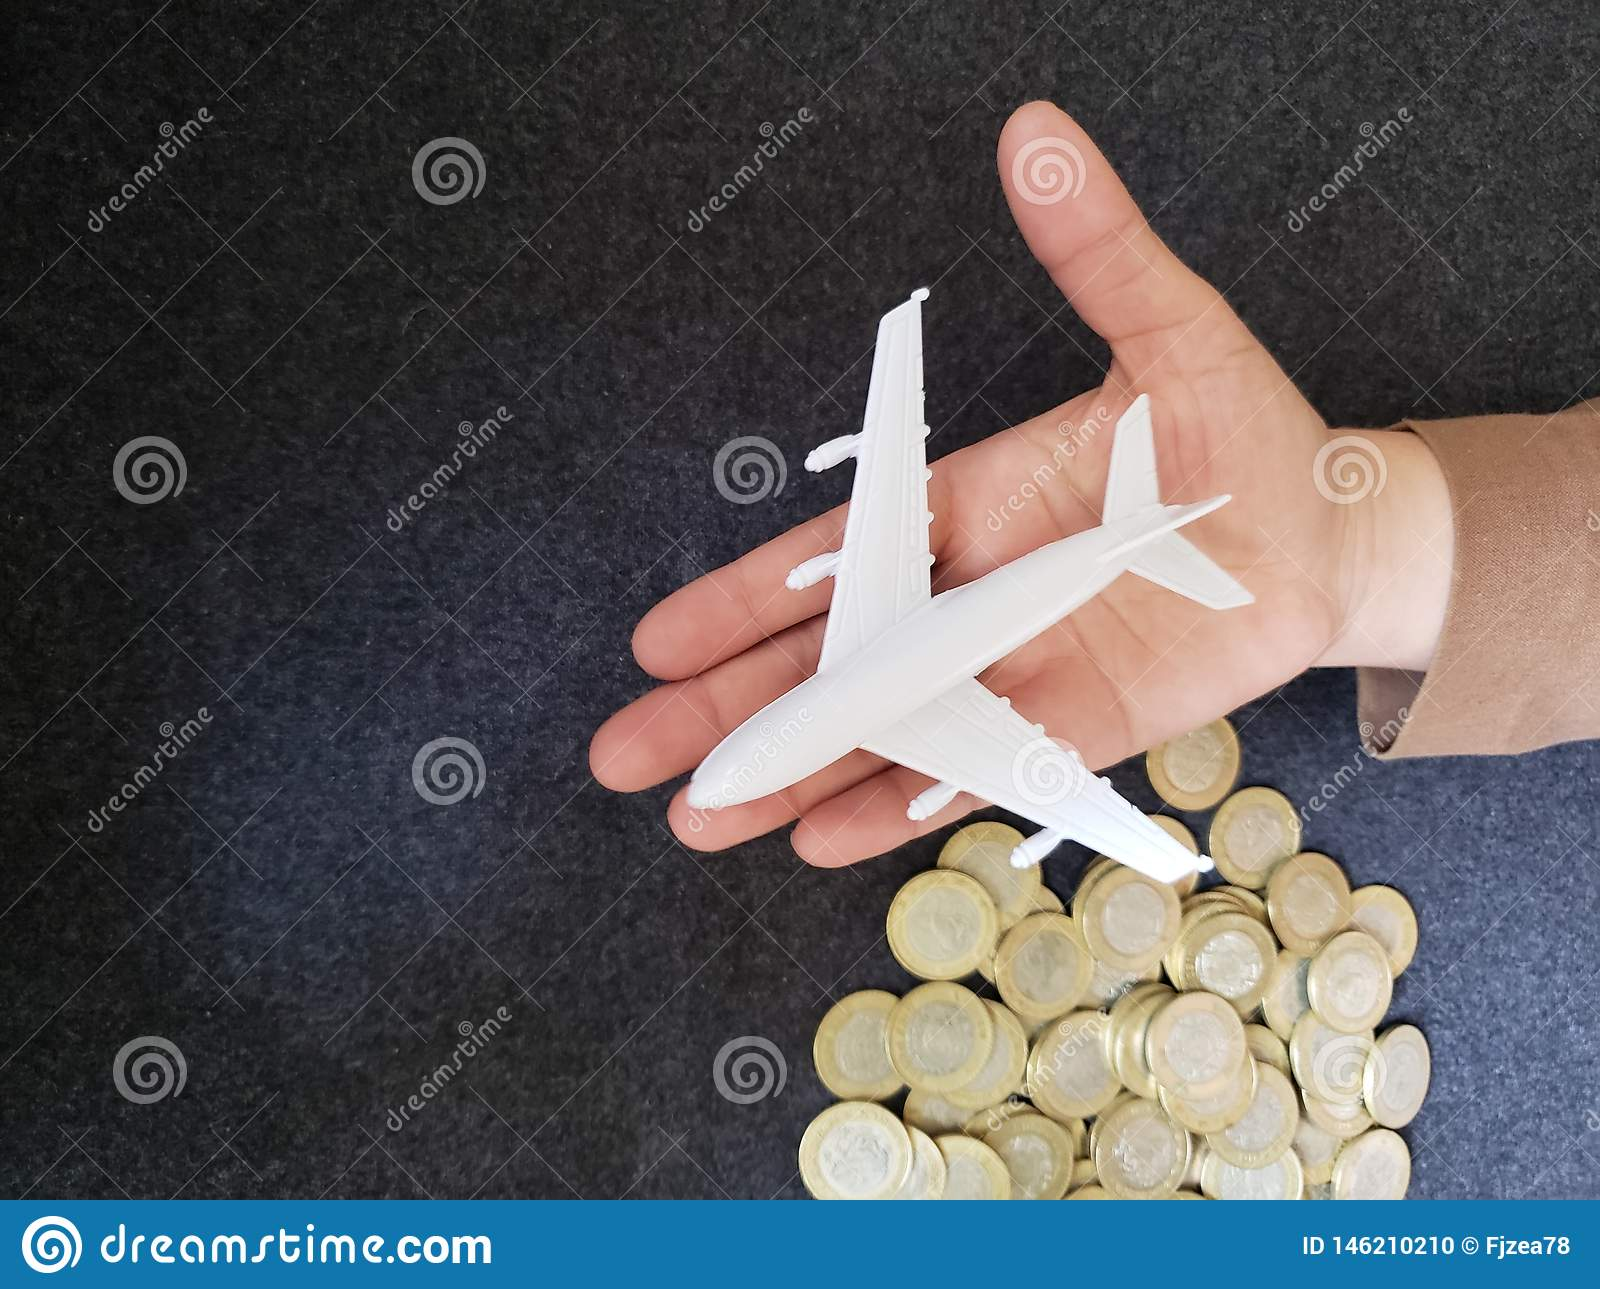 hand of a person with a white airplane figure and savings in mexican pesos